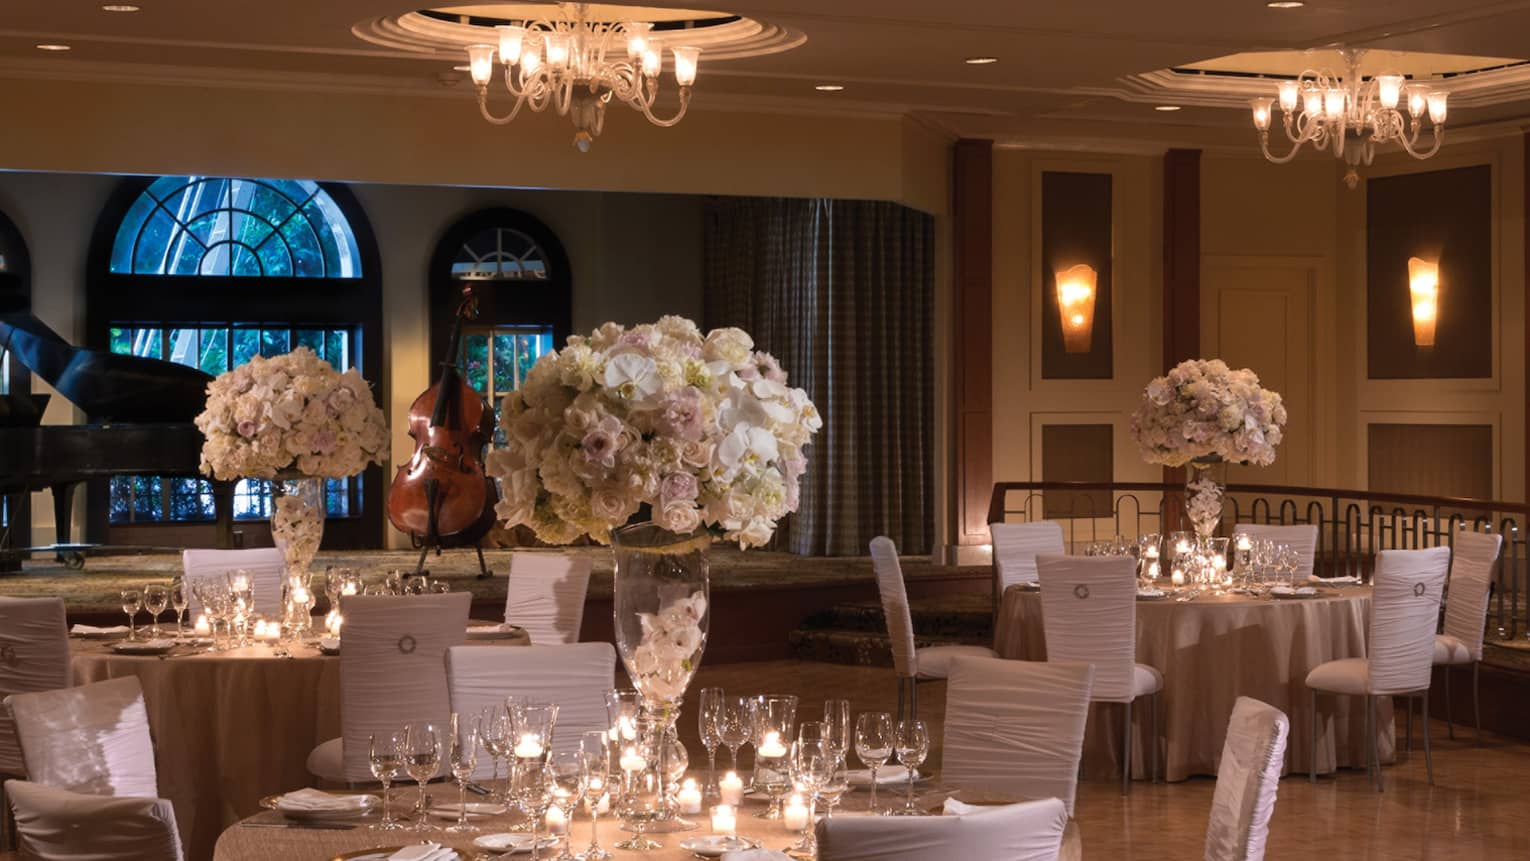 Elegant wedding reception tables with white chairs, flowers on ballroom floor